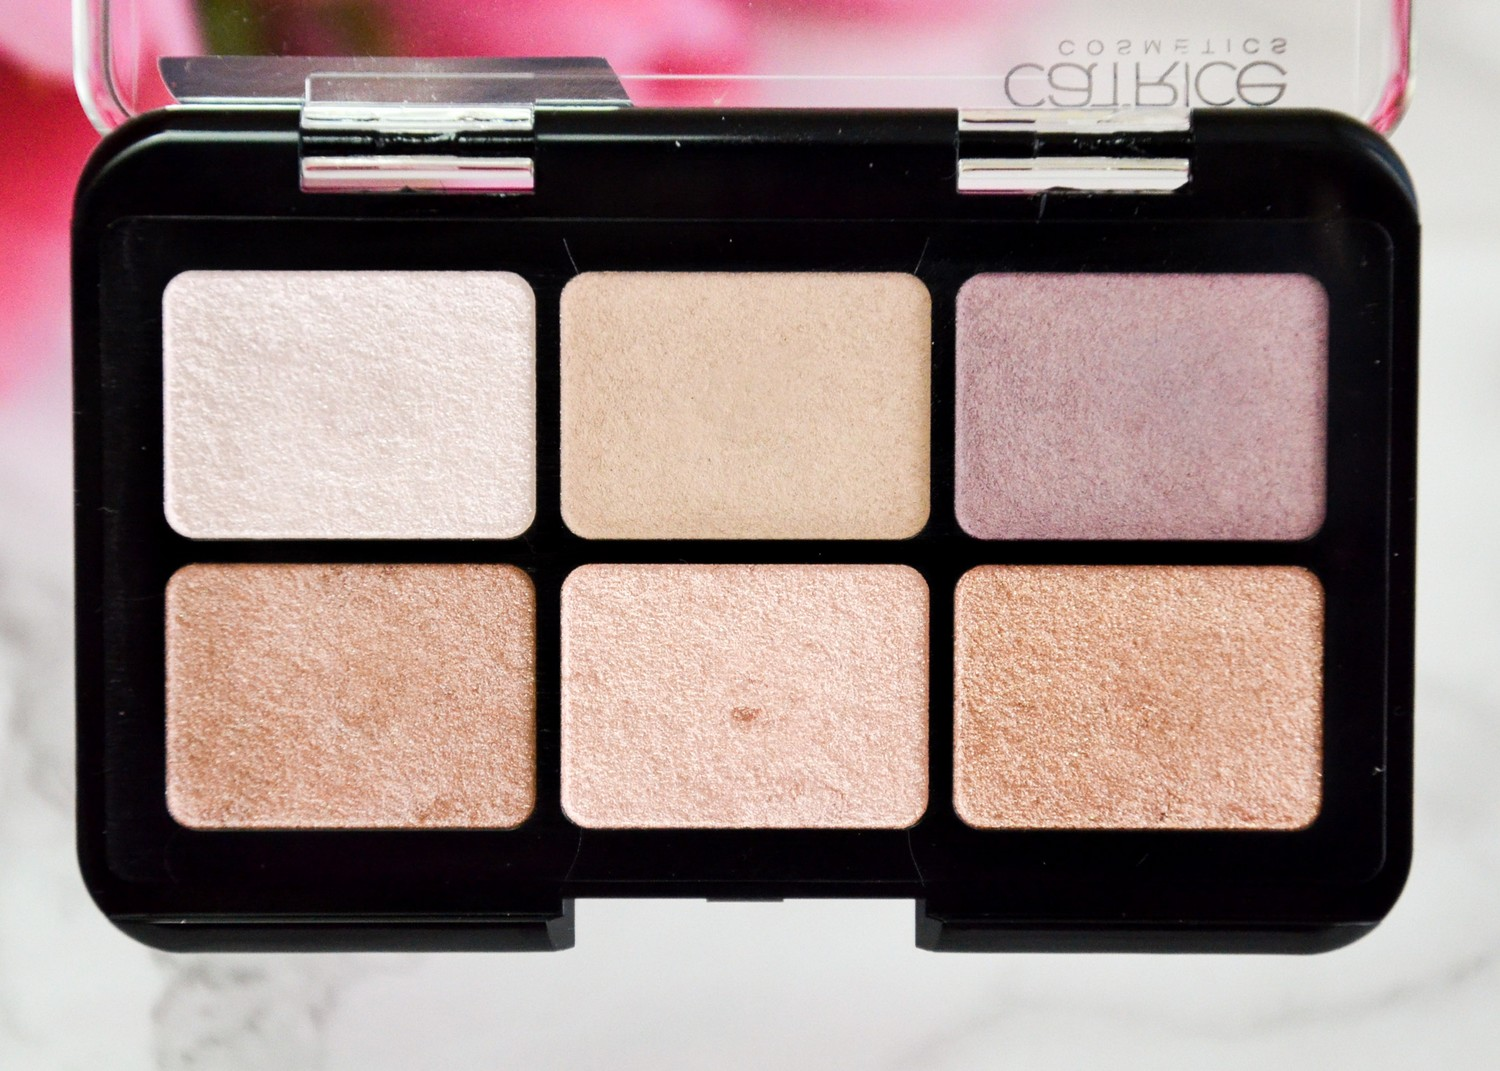 Catrice Future Female Palette À Porter Eyeshadow